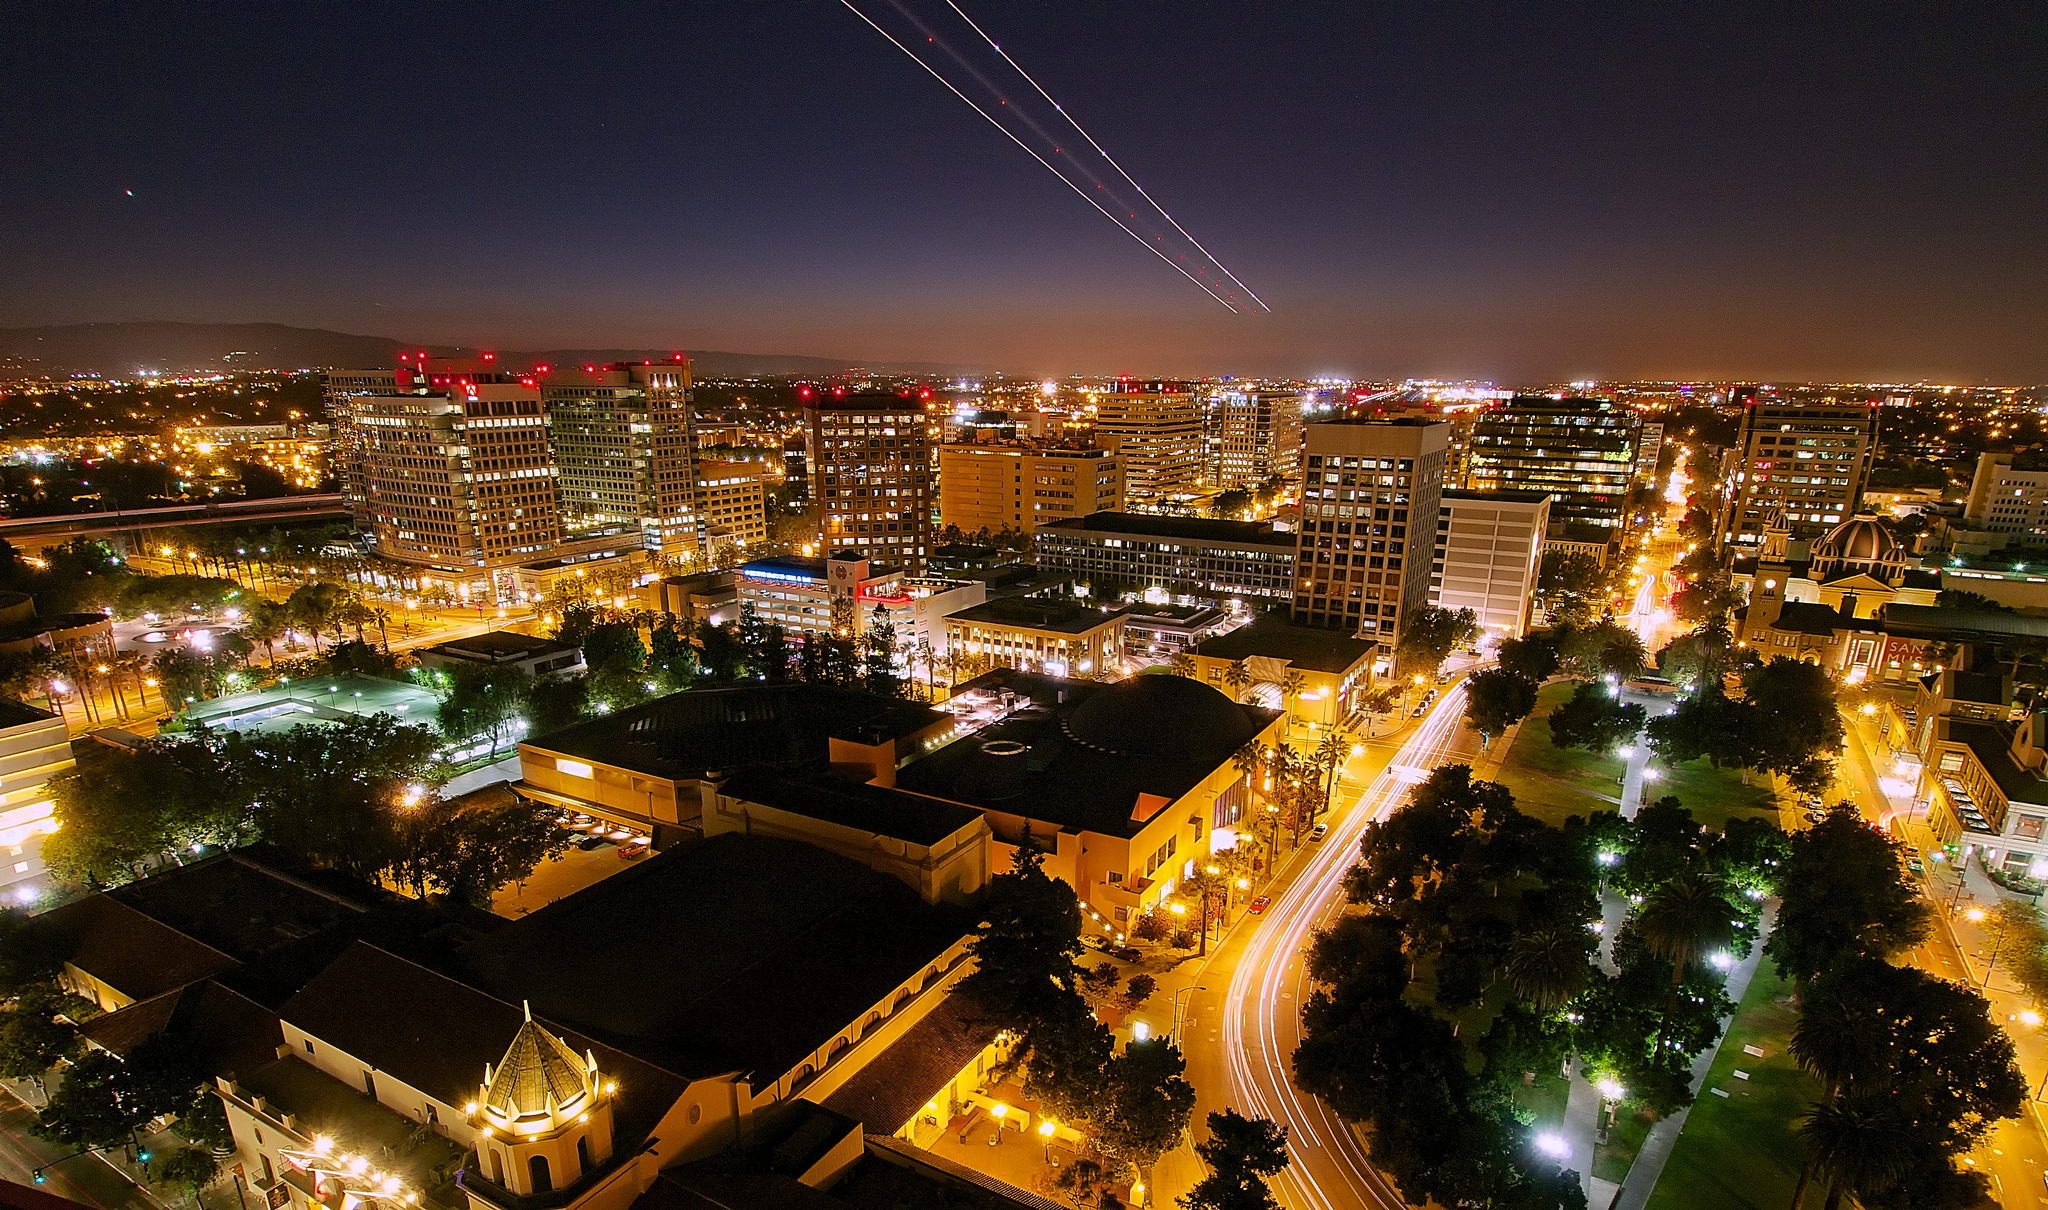 San Jose night scene